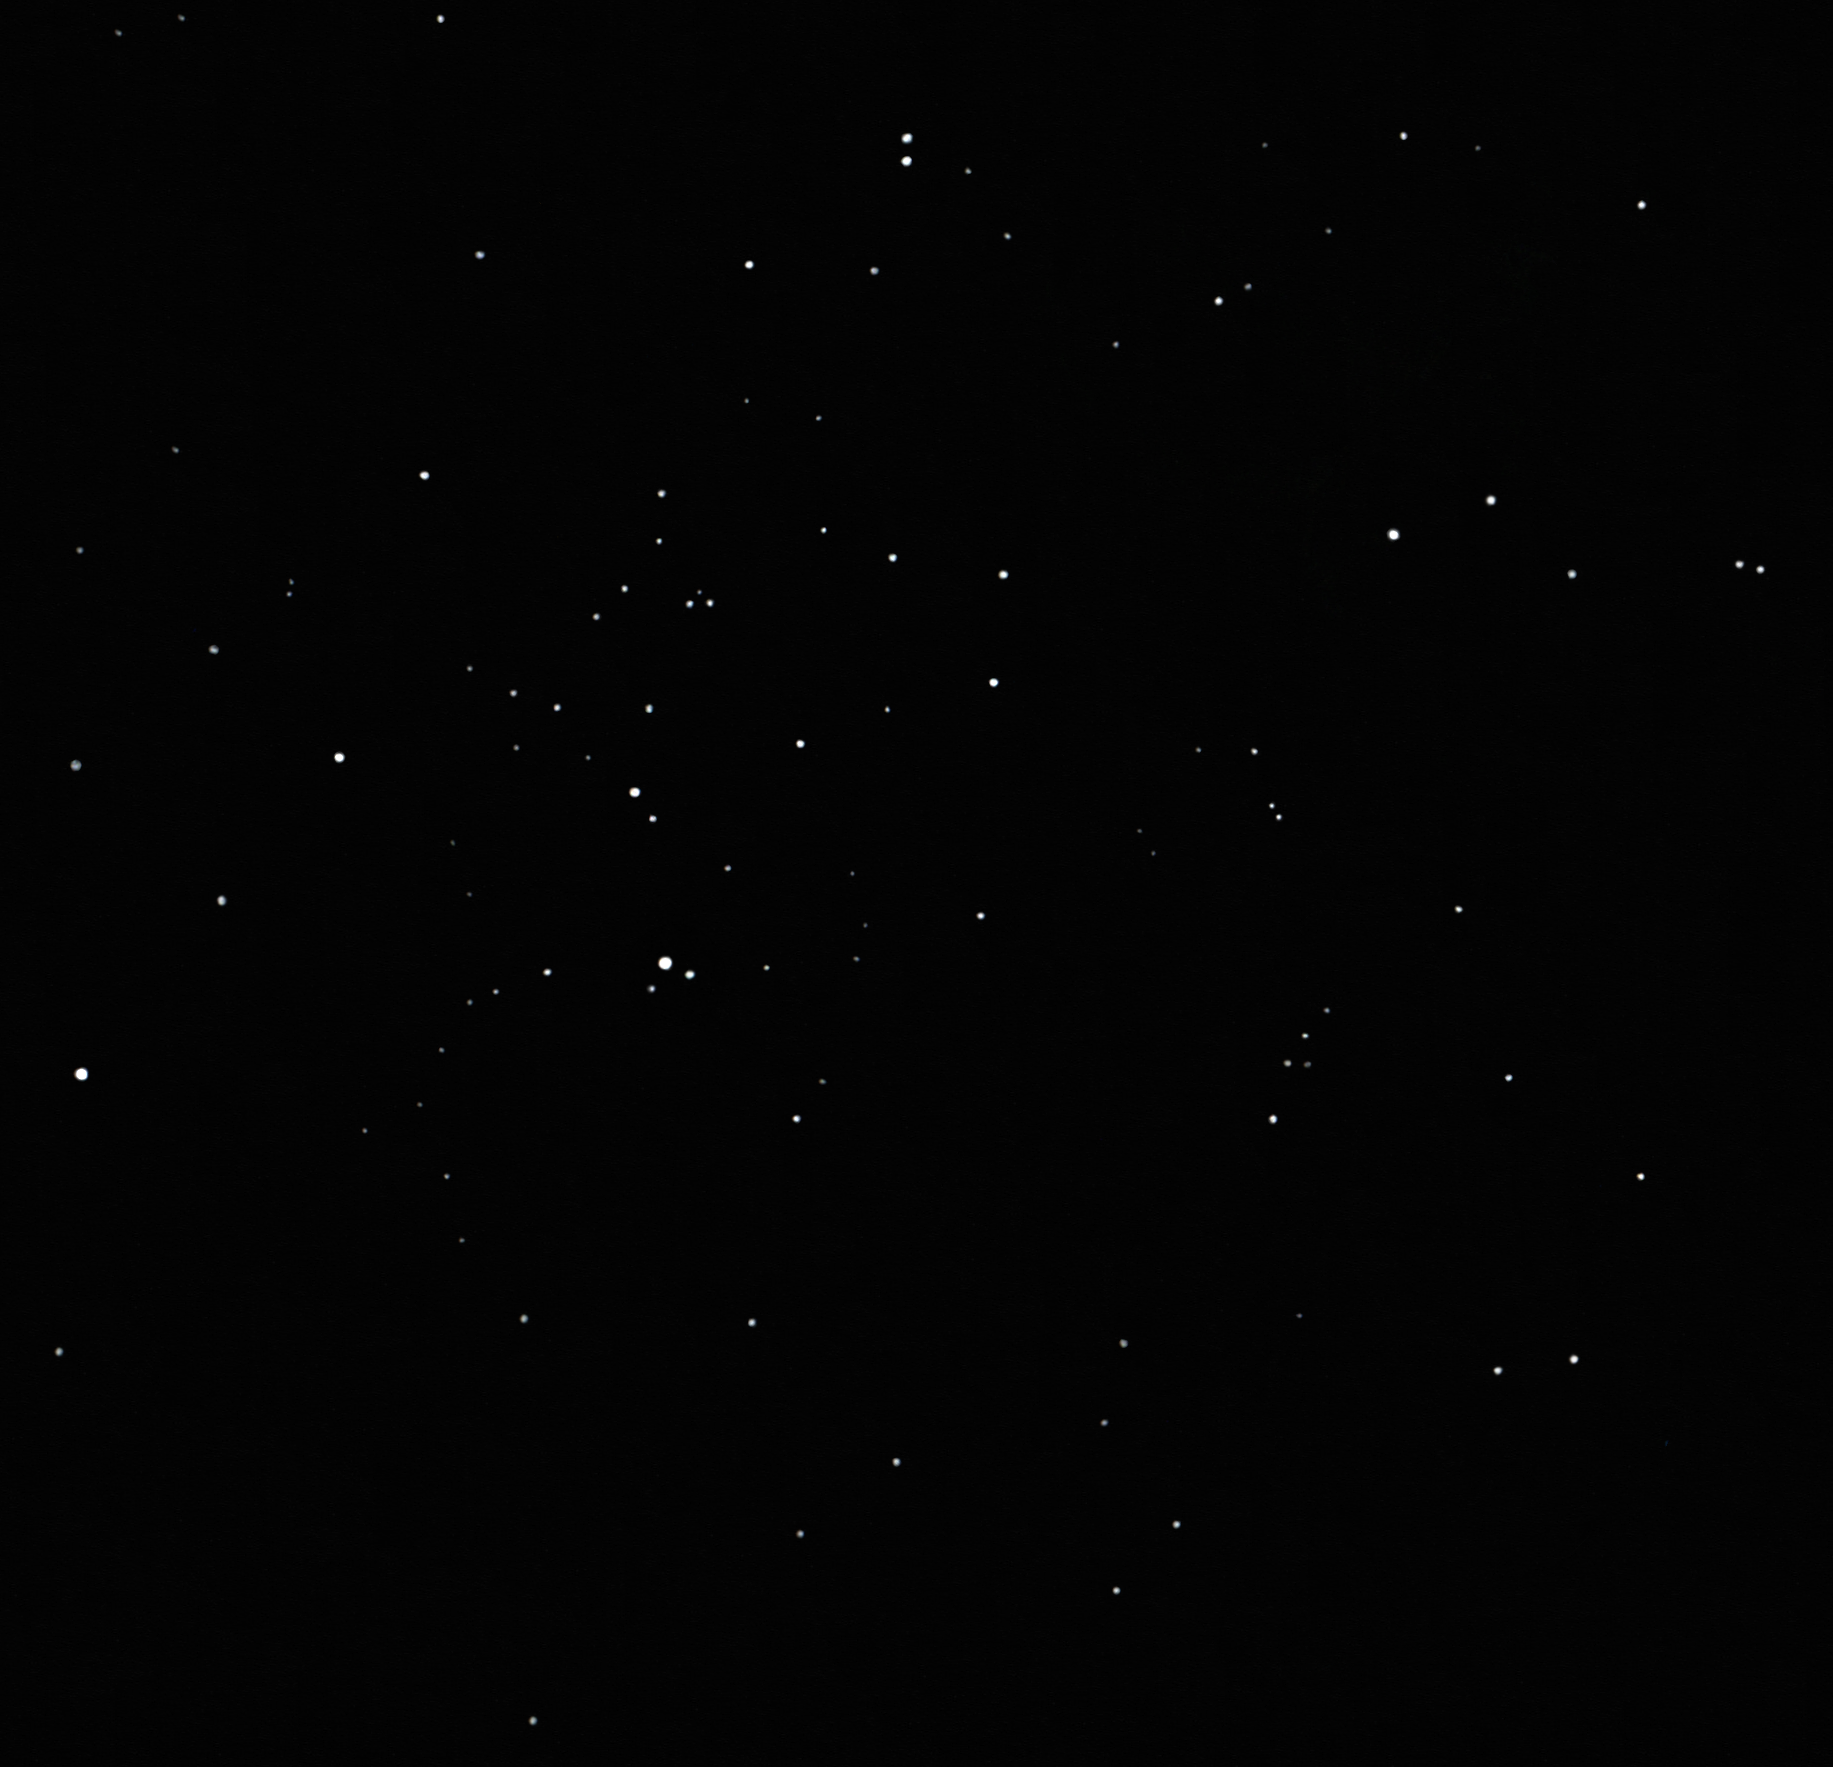 ngc 752 open cluster